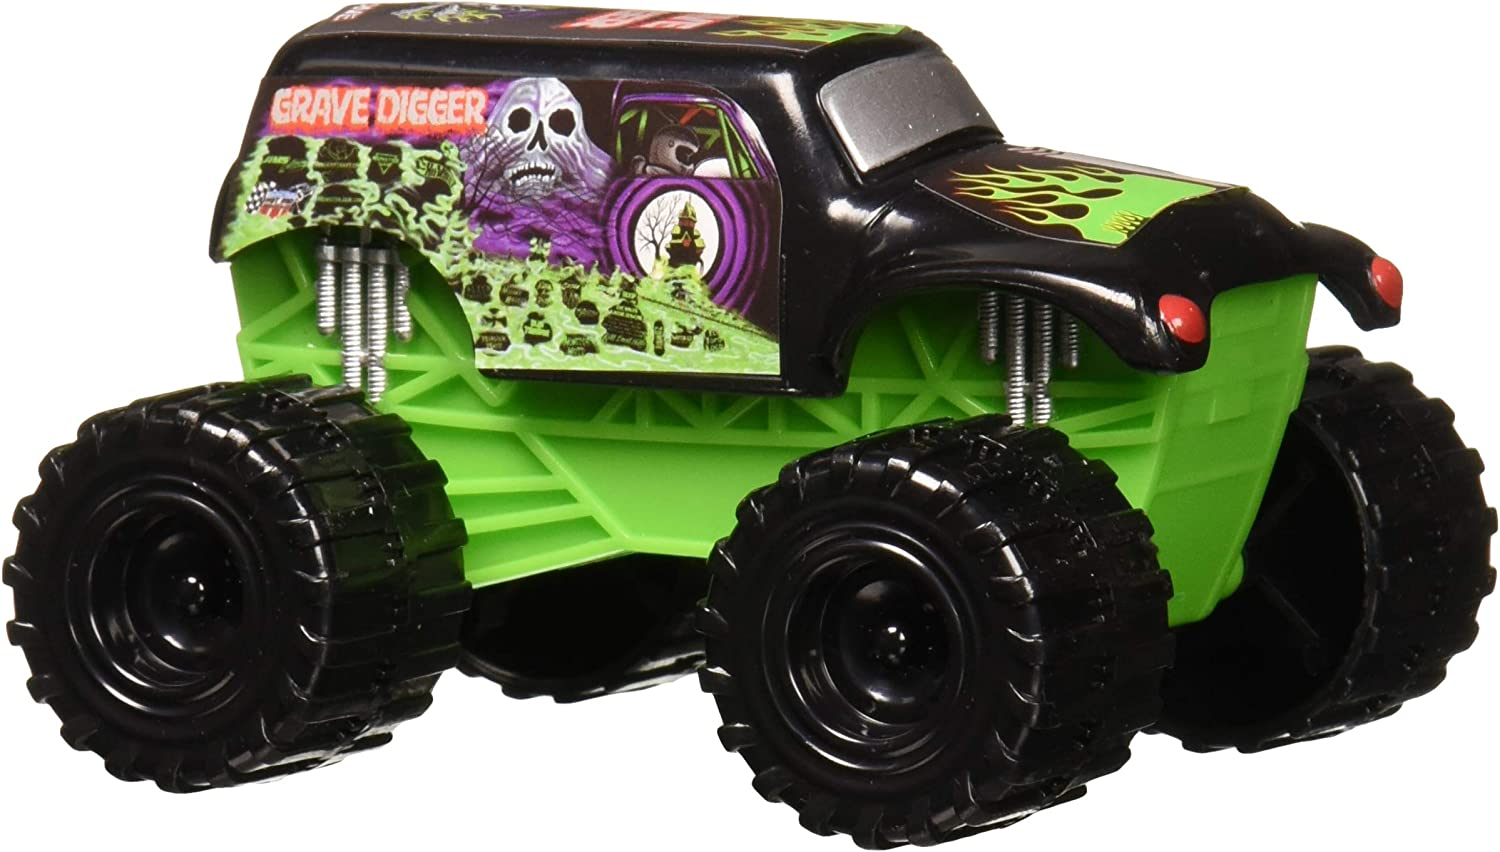 Swell Amazon Com Monster Jam Grave Digger Truck Cake Topper Toys Games Funny Birthday Cards Online Alyptdamsfinfo